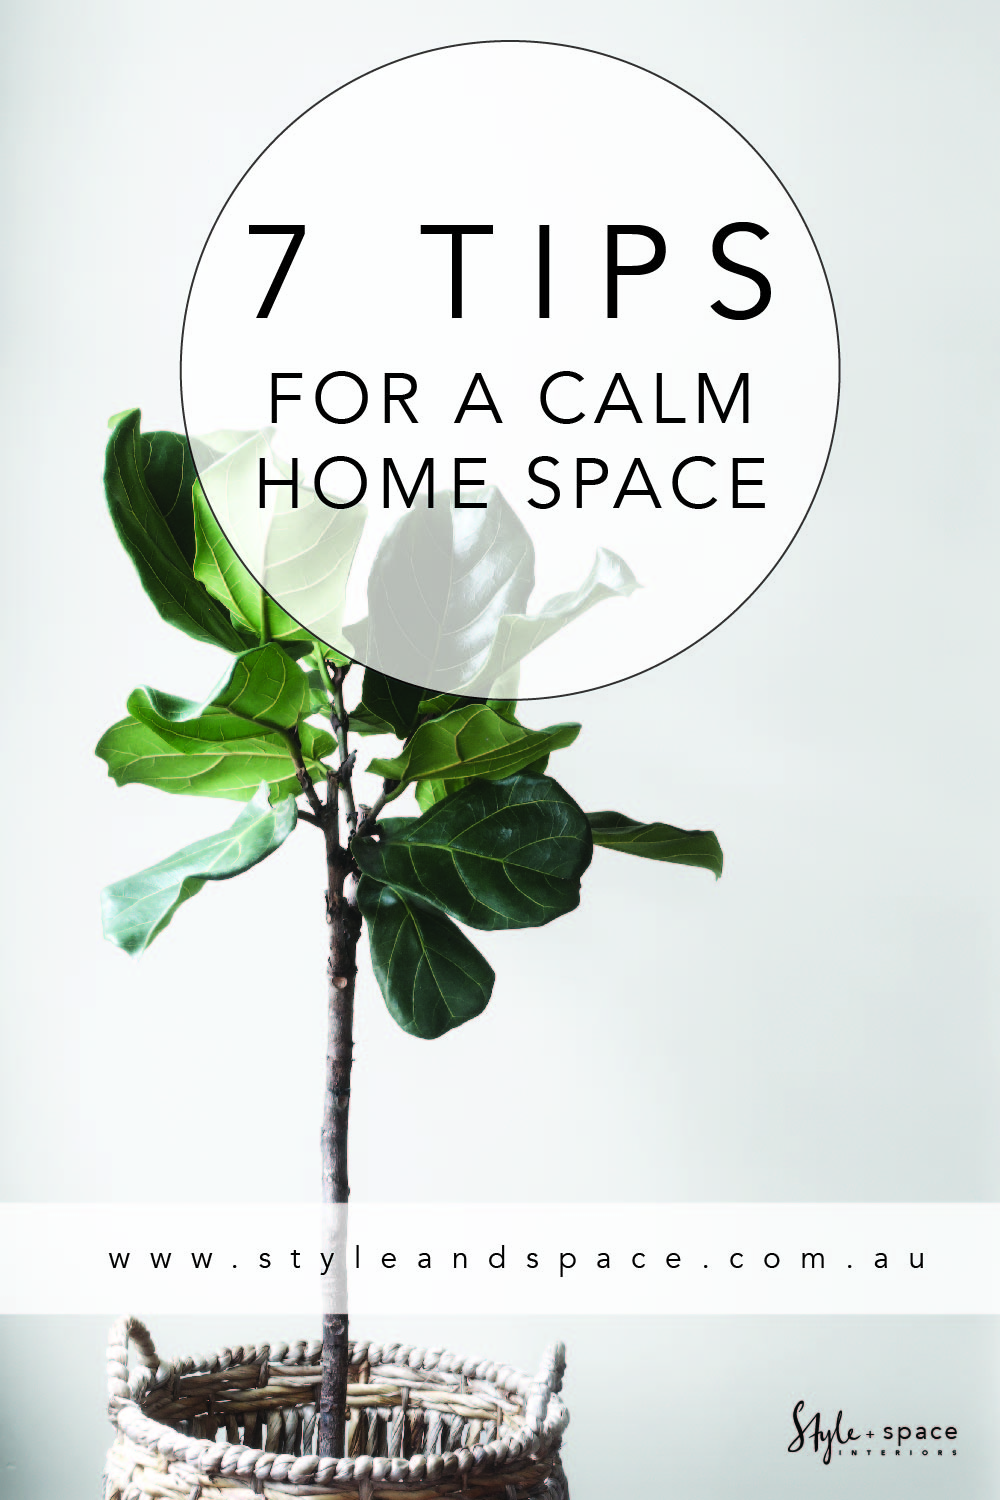 7 Tips for Calm Home Space-01.jpg